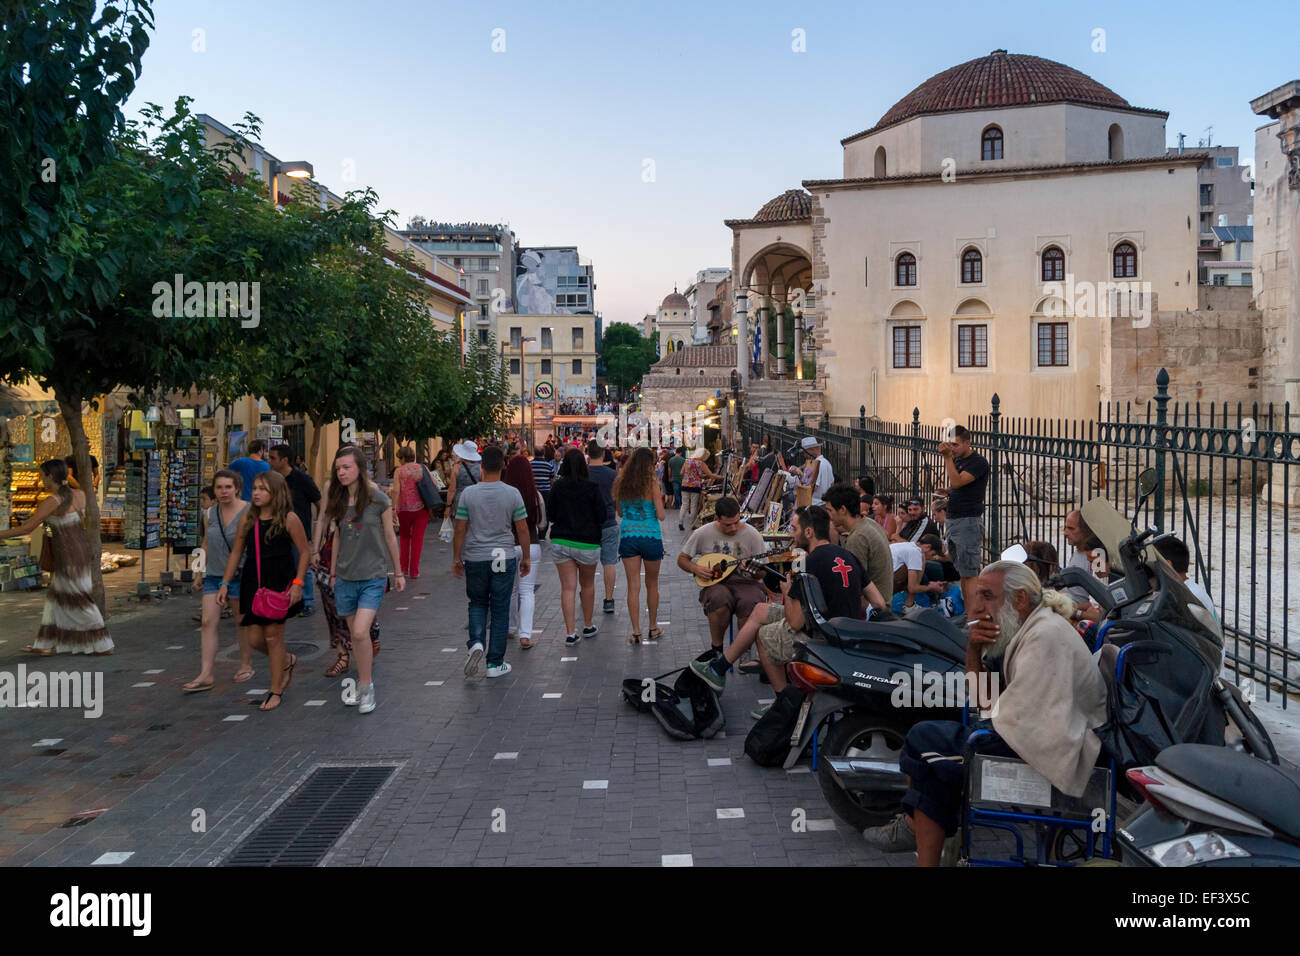 Holiday makers, tourists, market sellers and buskers on Monastiraki, Avissynias Square, Athens, Greece - Stock Image